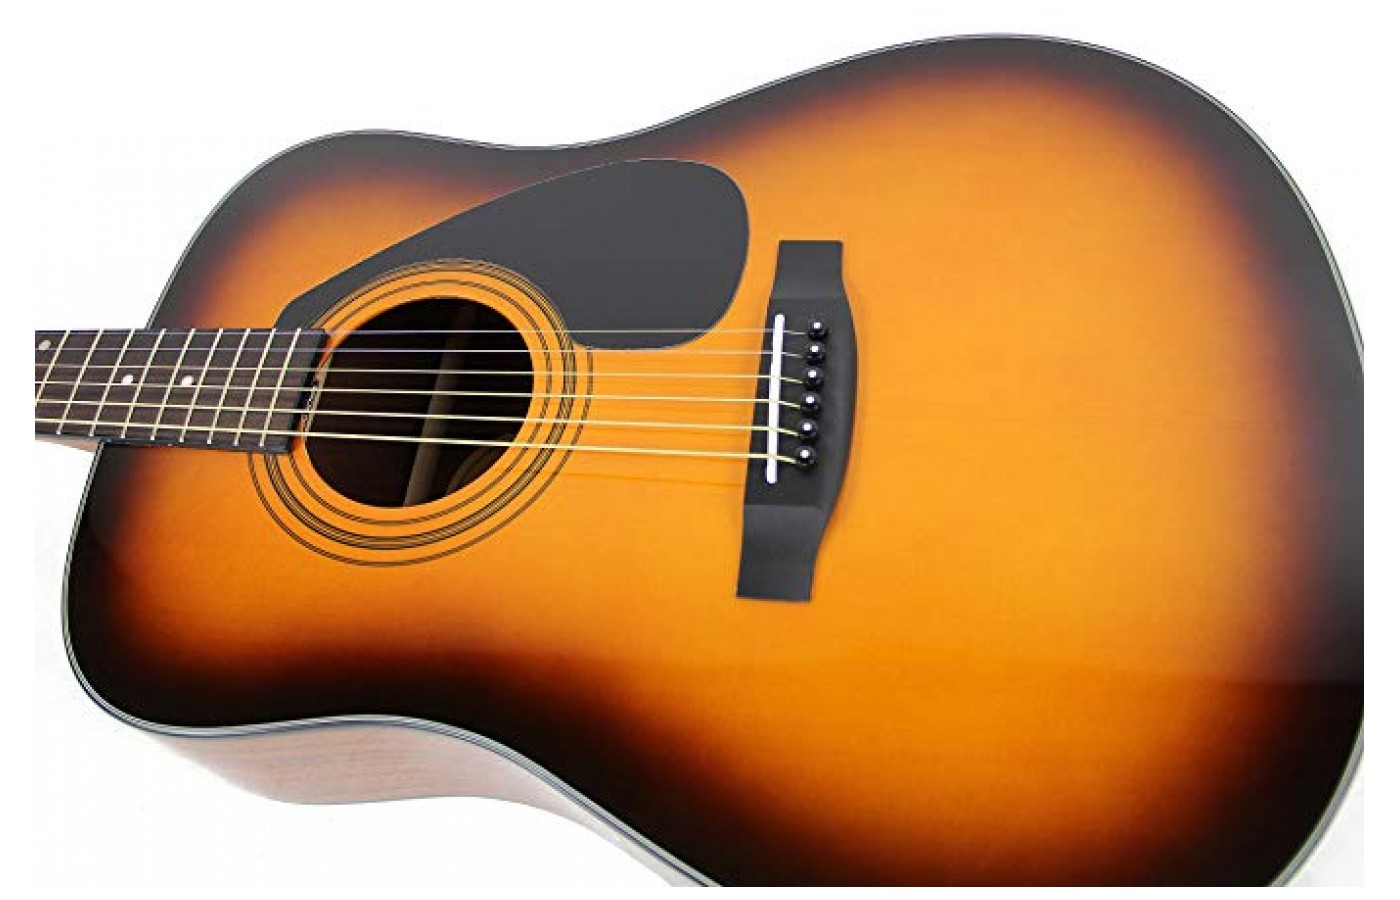 This guitar has a built in tuner for ease of set-up.